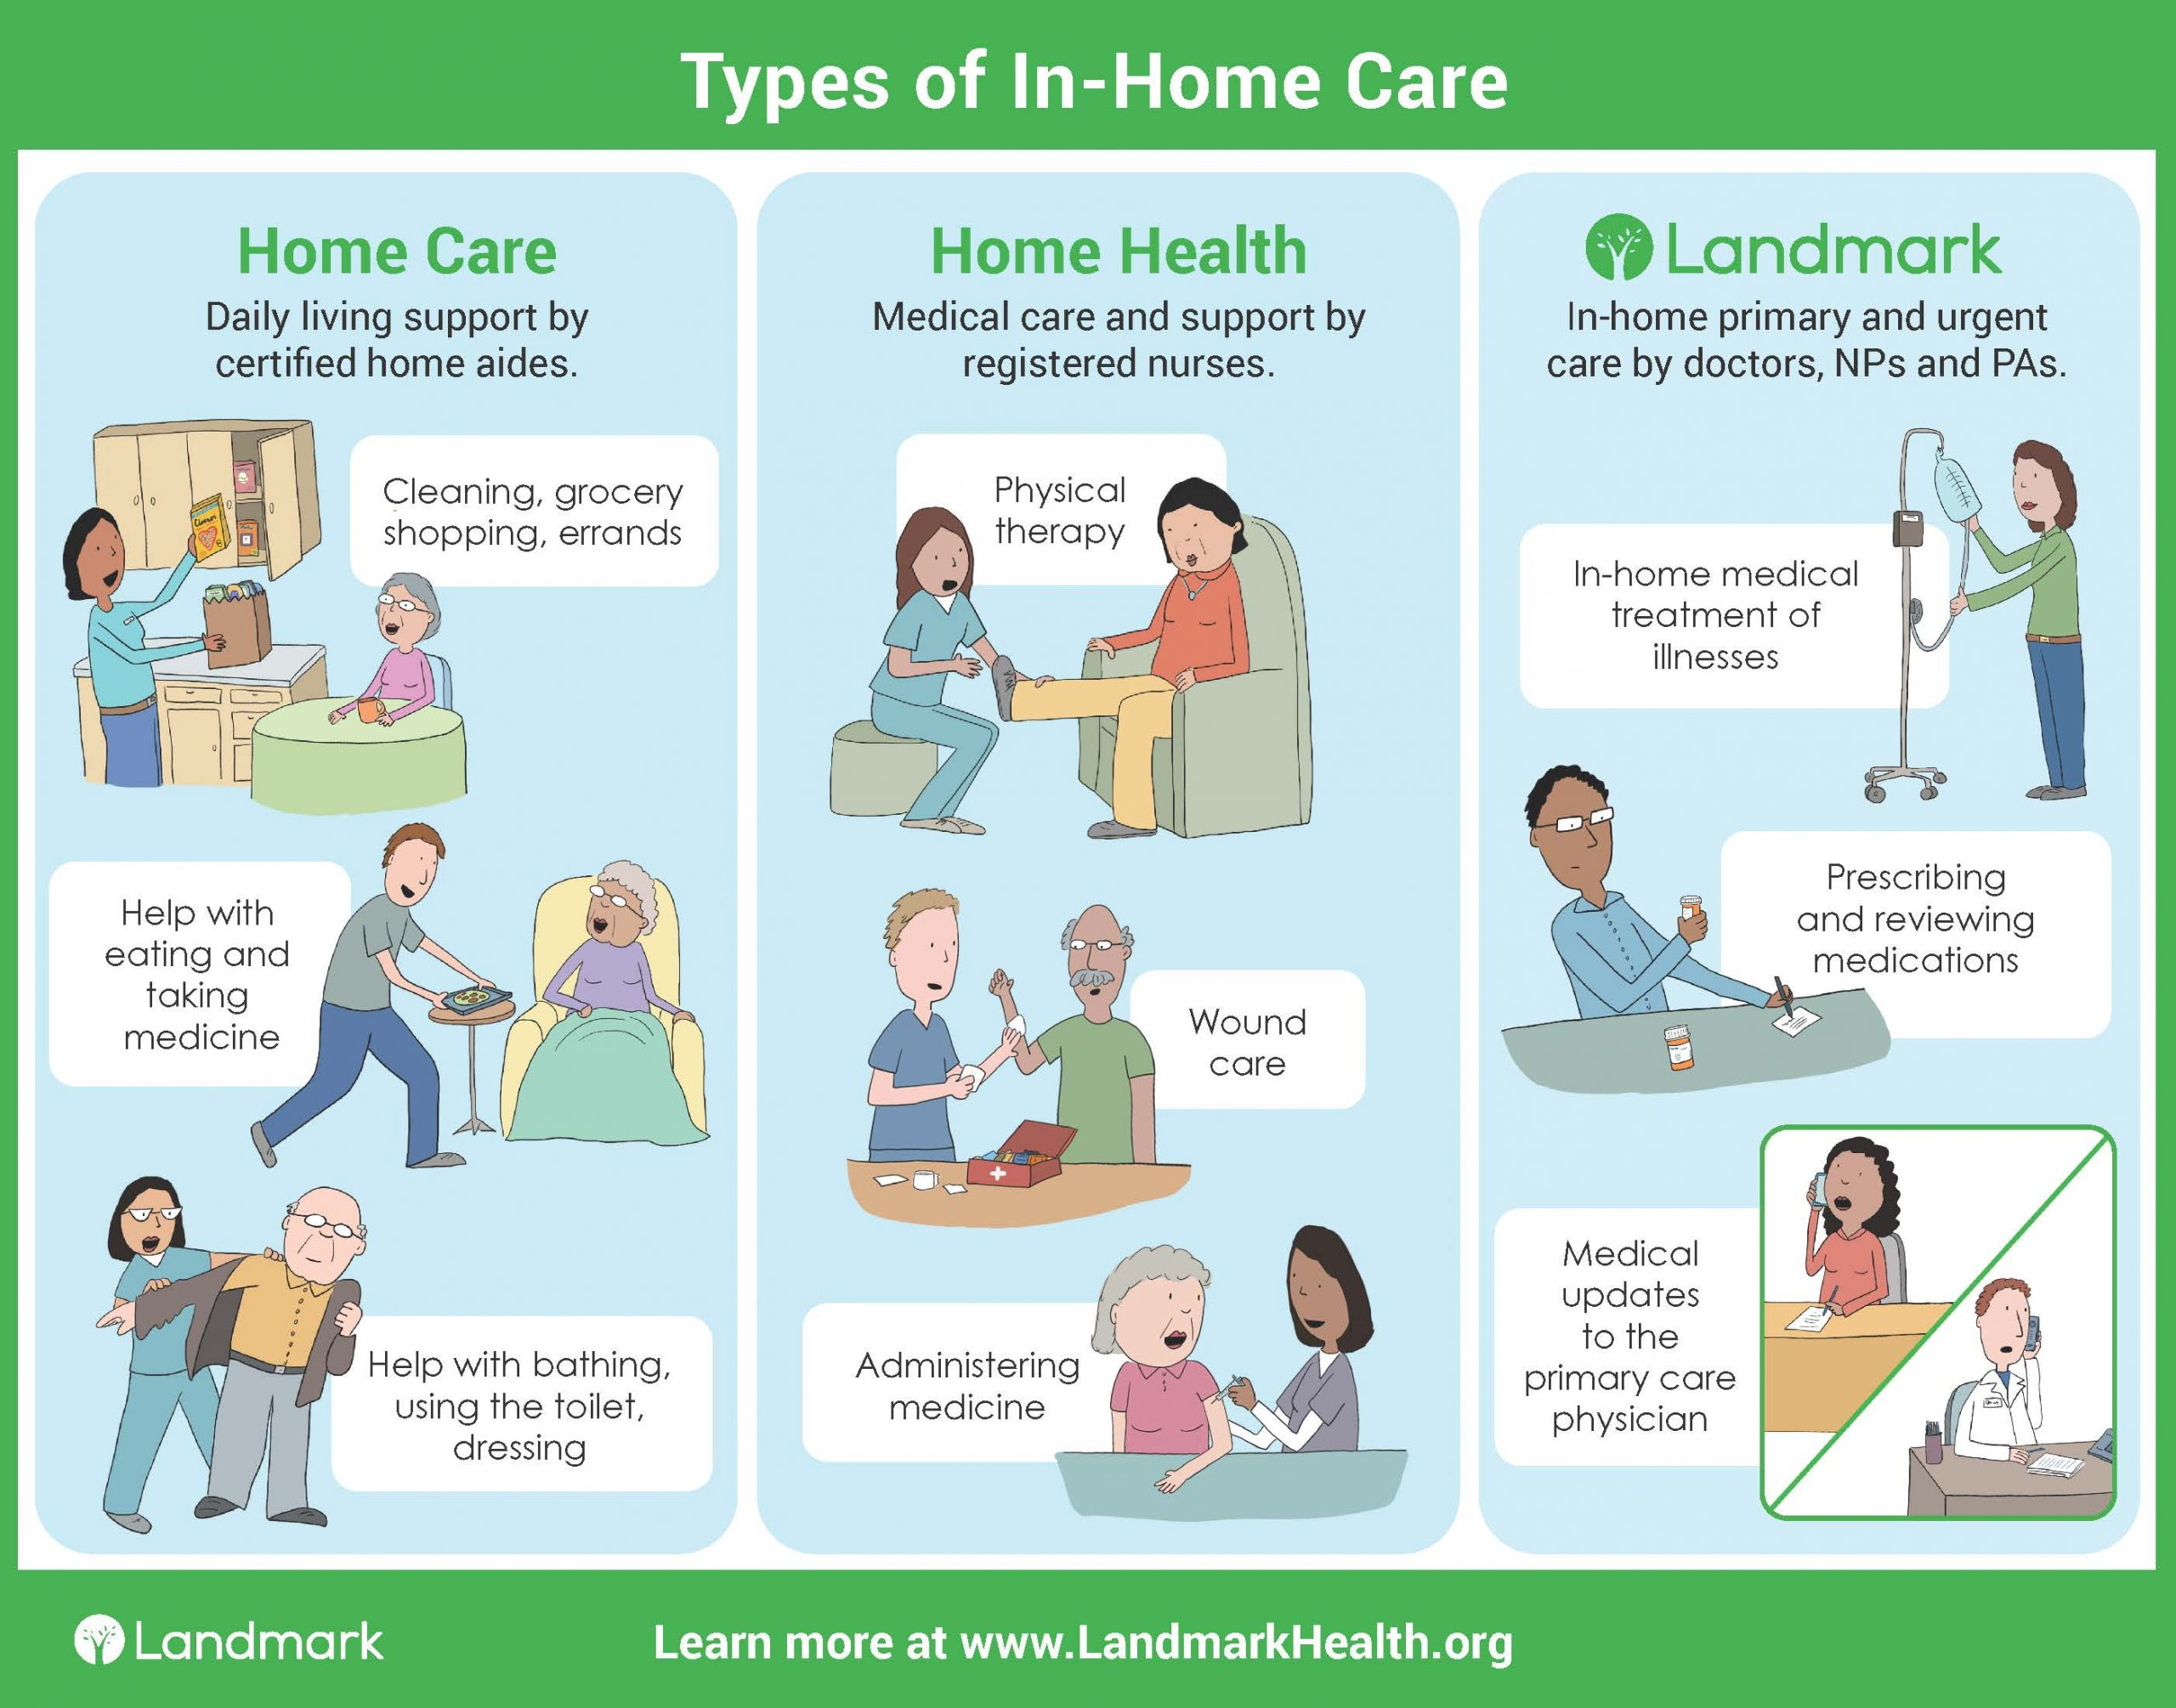 Types of In-home Care